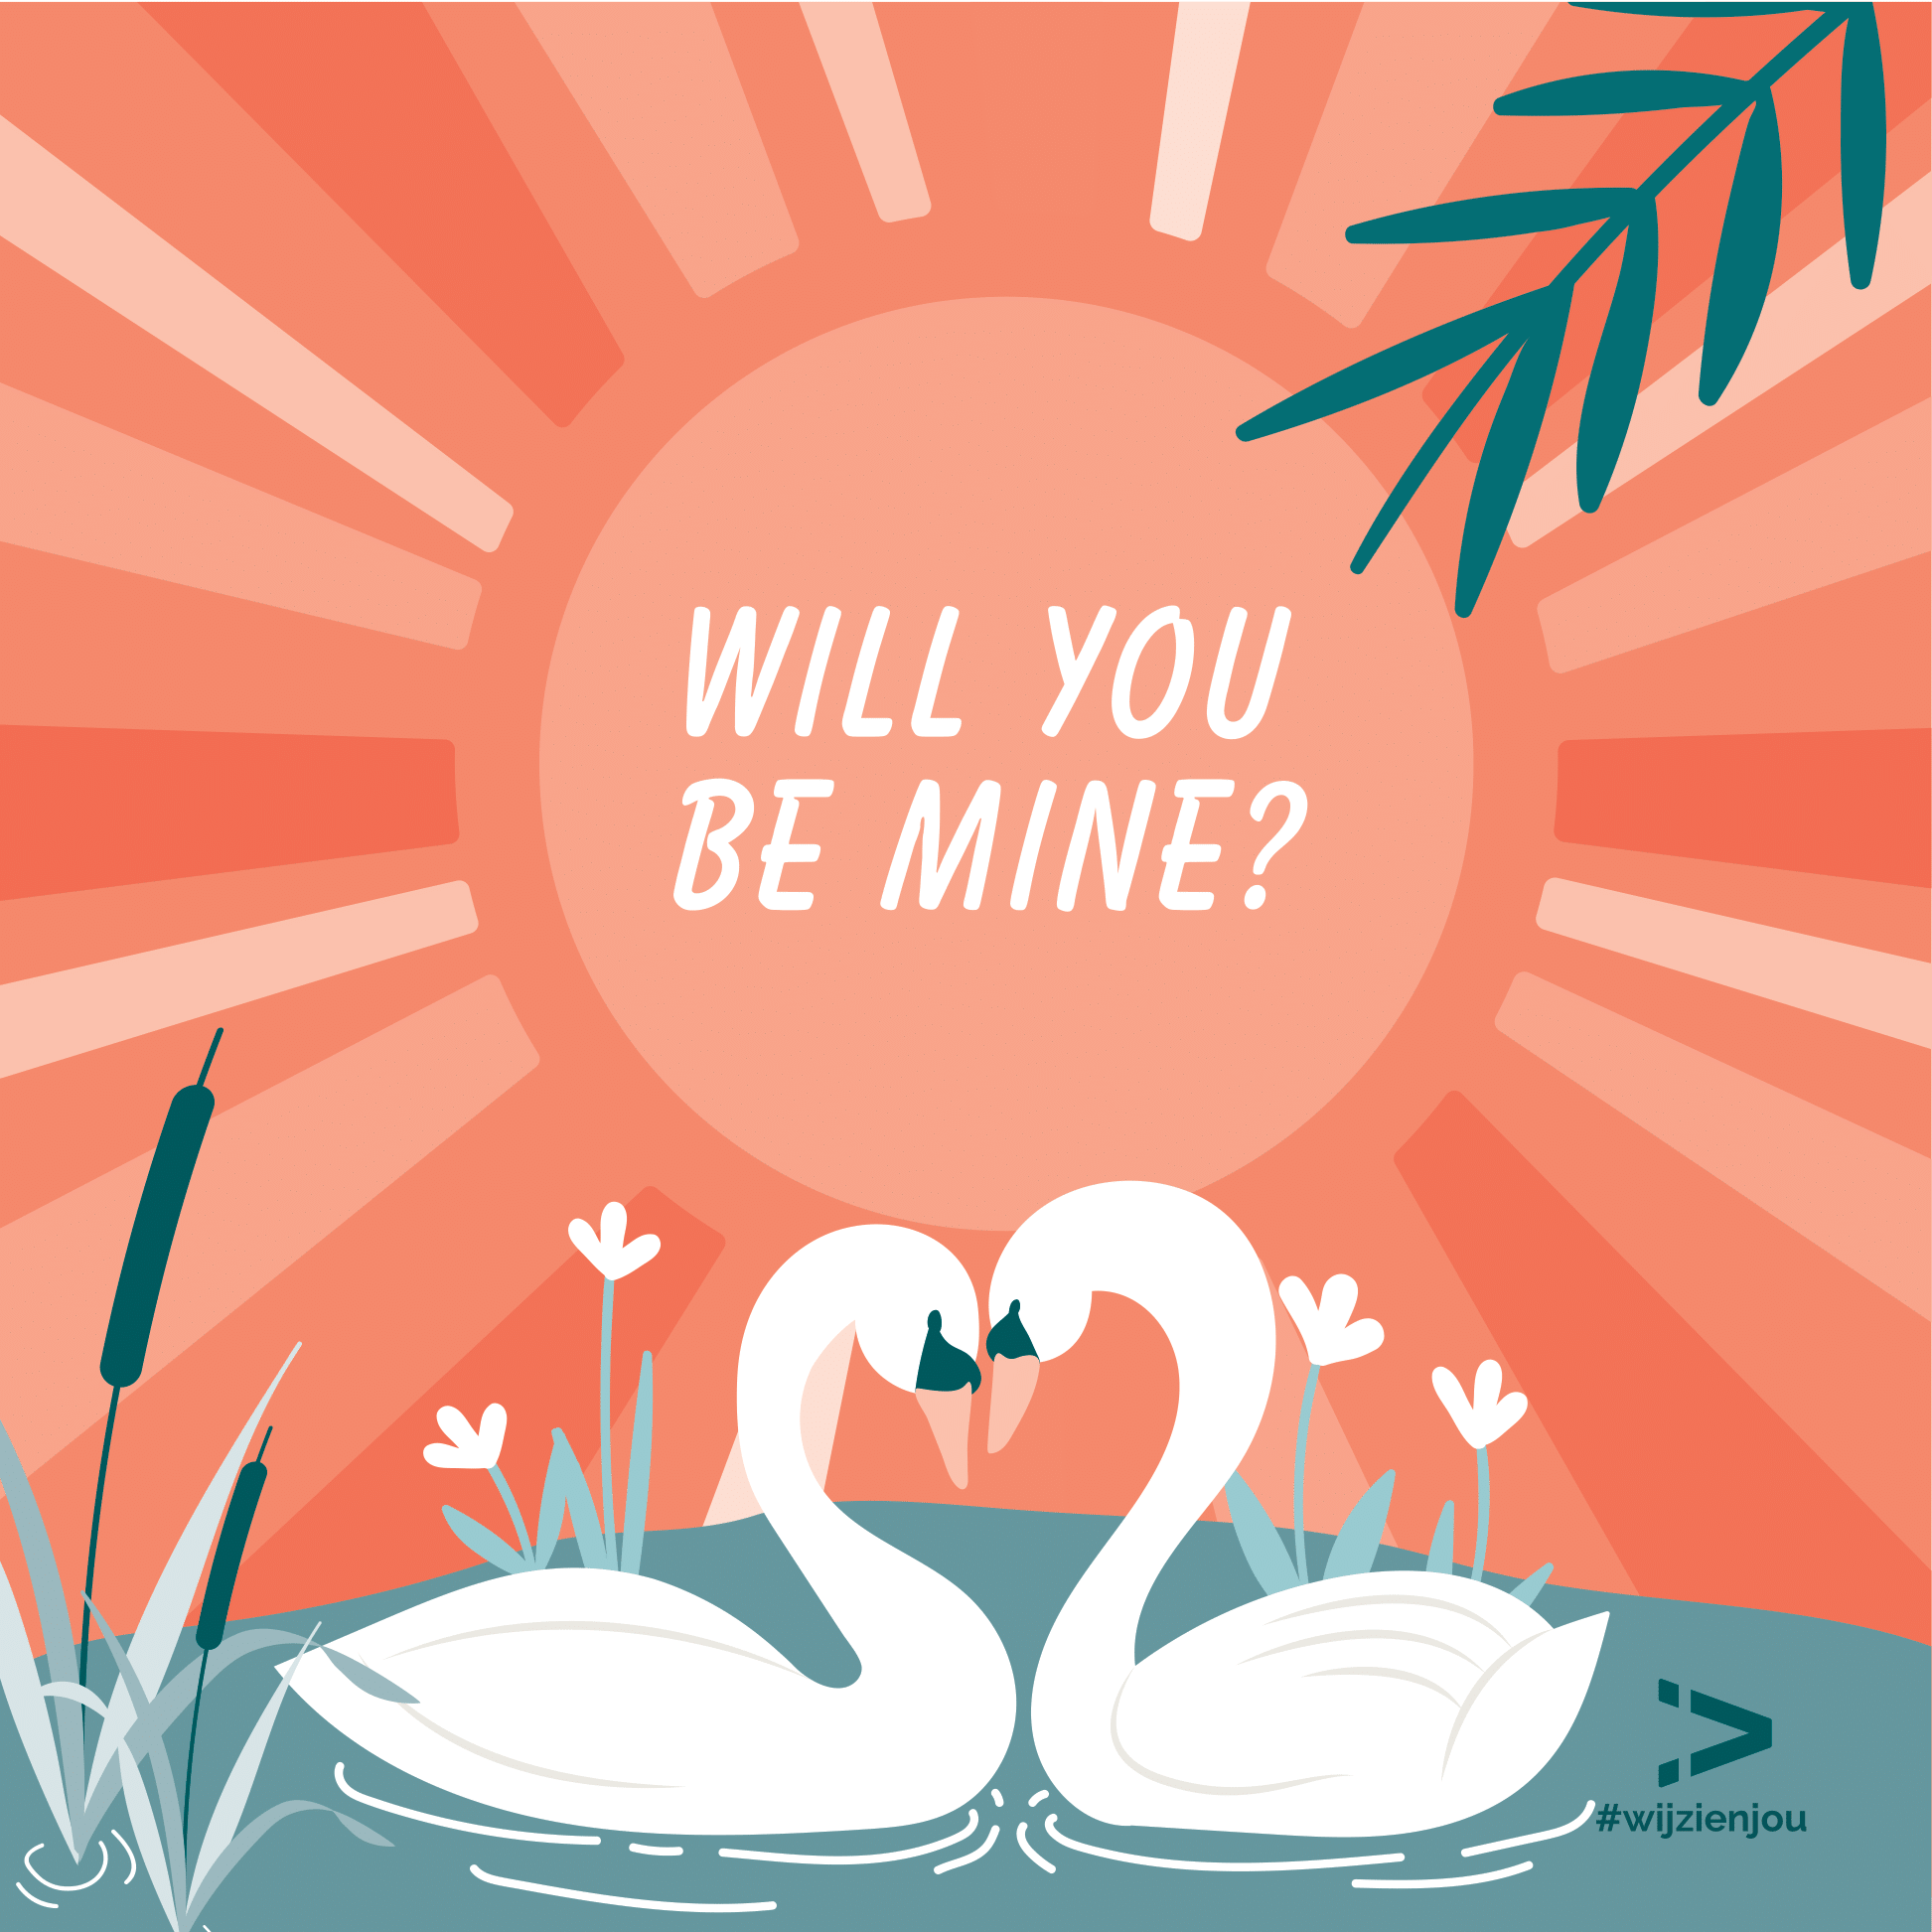 Will you be mine?